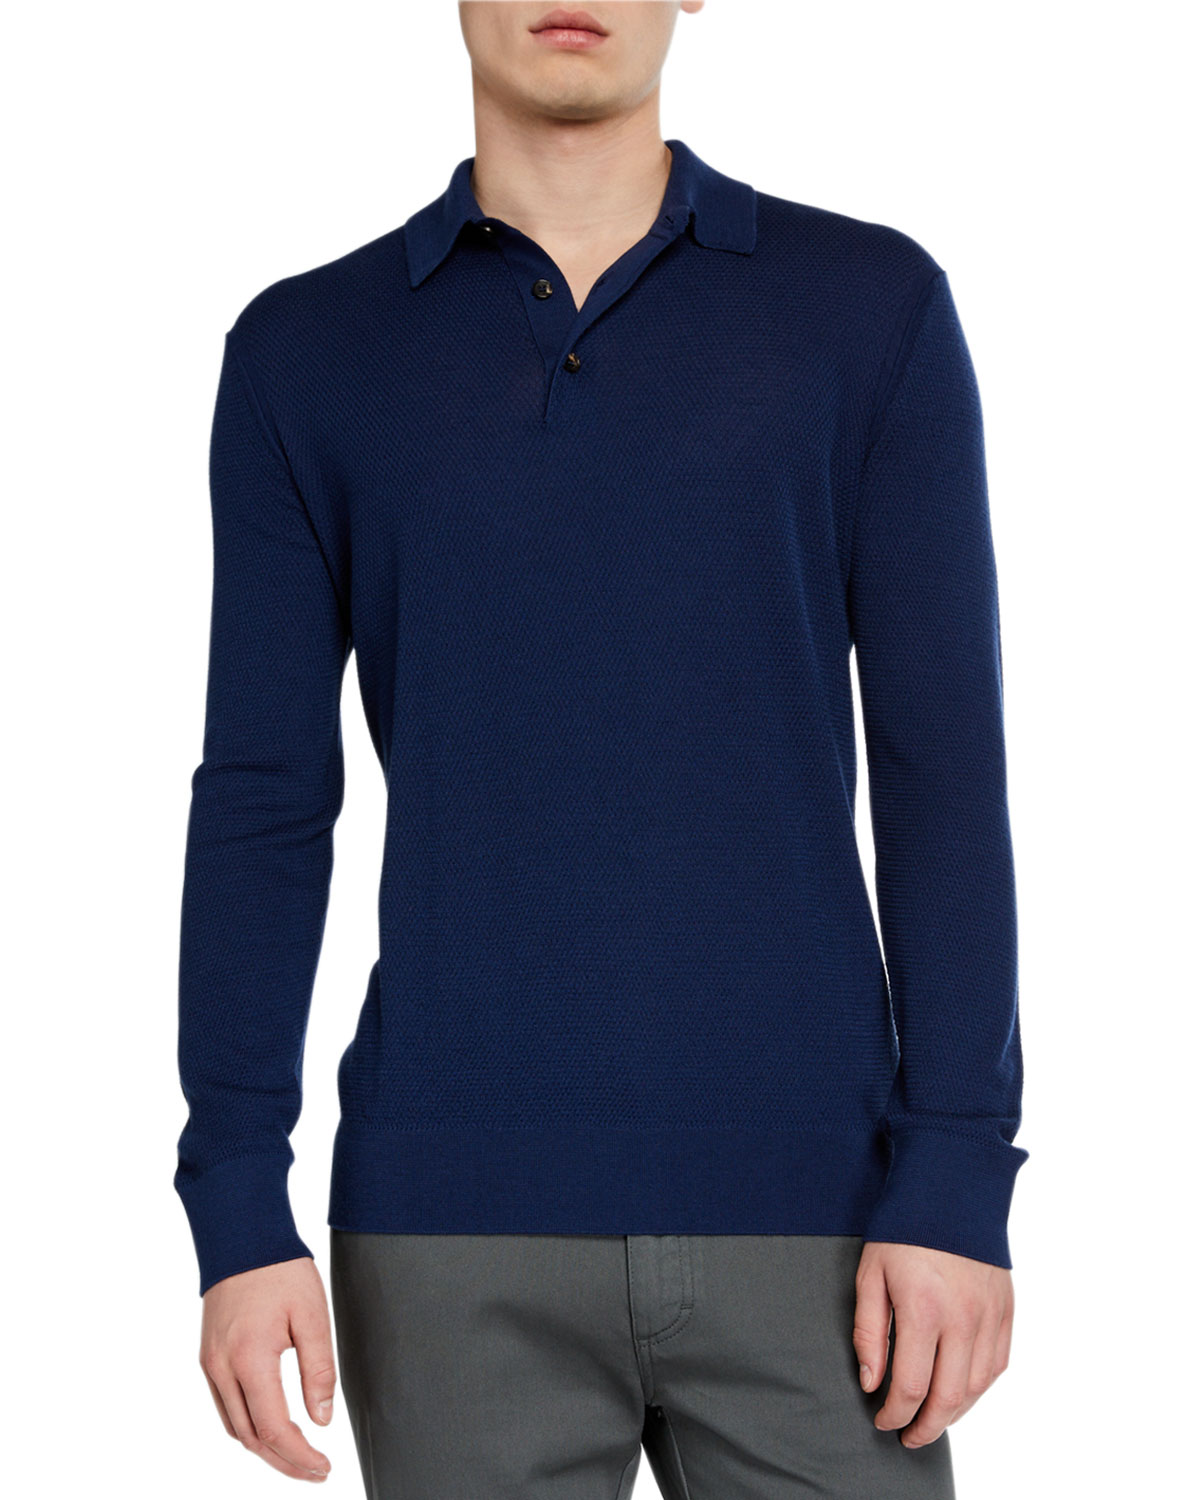 Ermenegildo Zegna Men's Cashmere-Blend Long-Sleeve Polo Shirt, Dark Blue